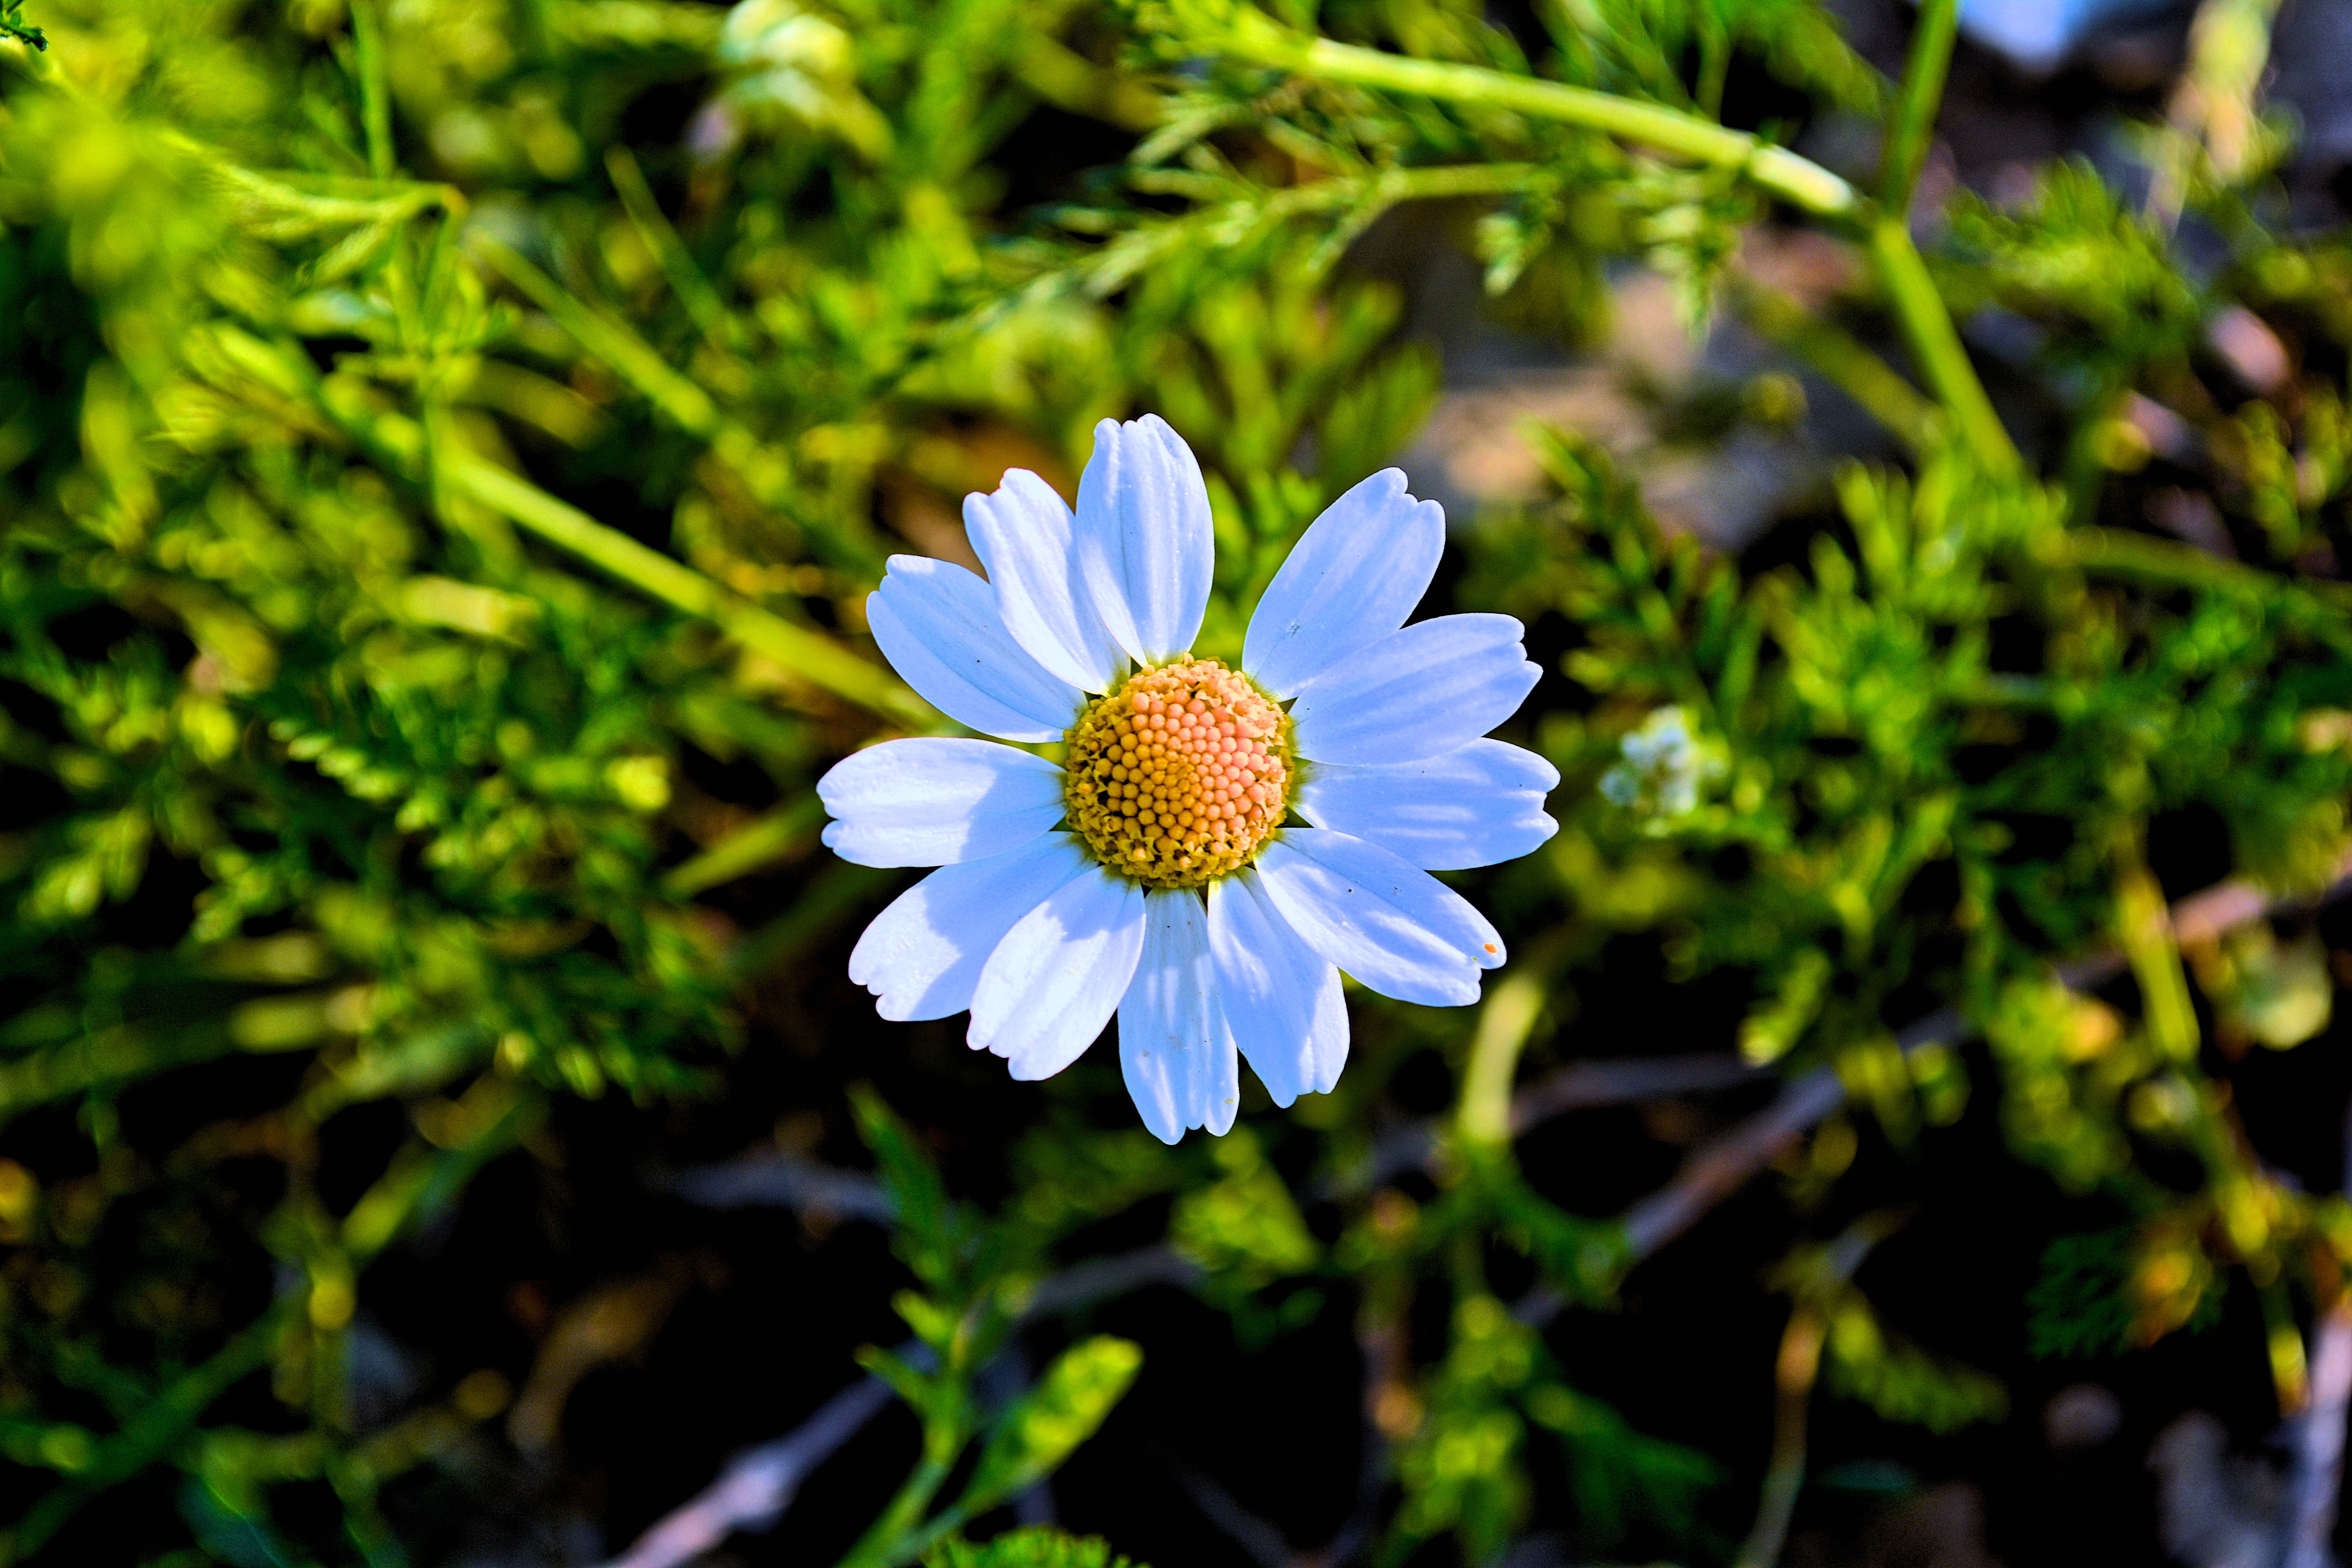 White Daisy Flower, Mother nature, Growth, Nature photography, Garden, HQ Photo